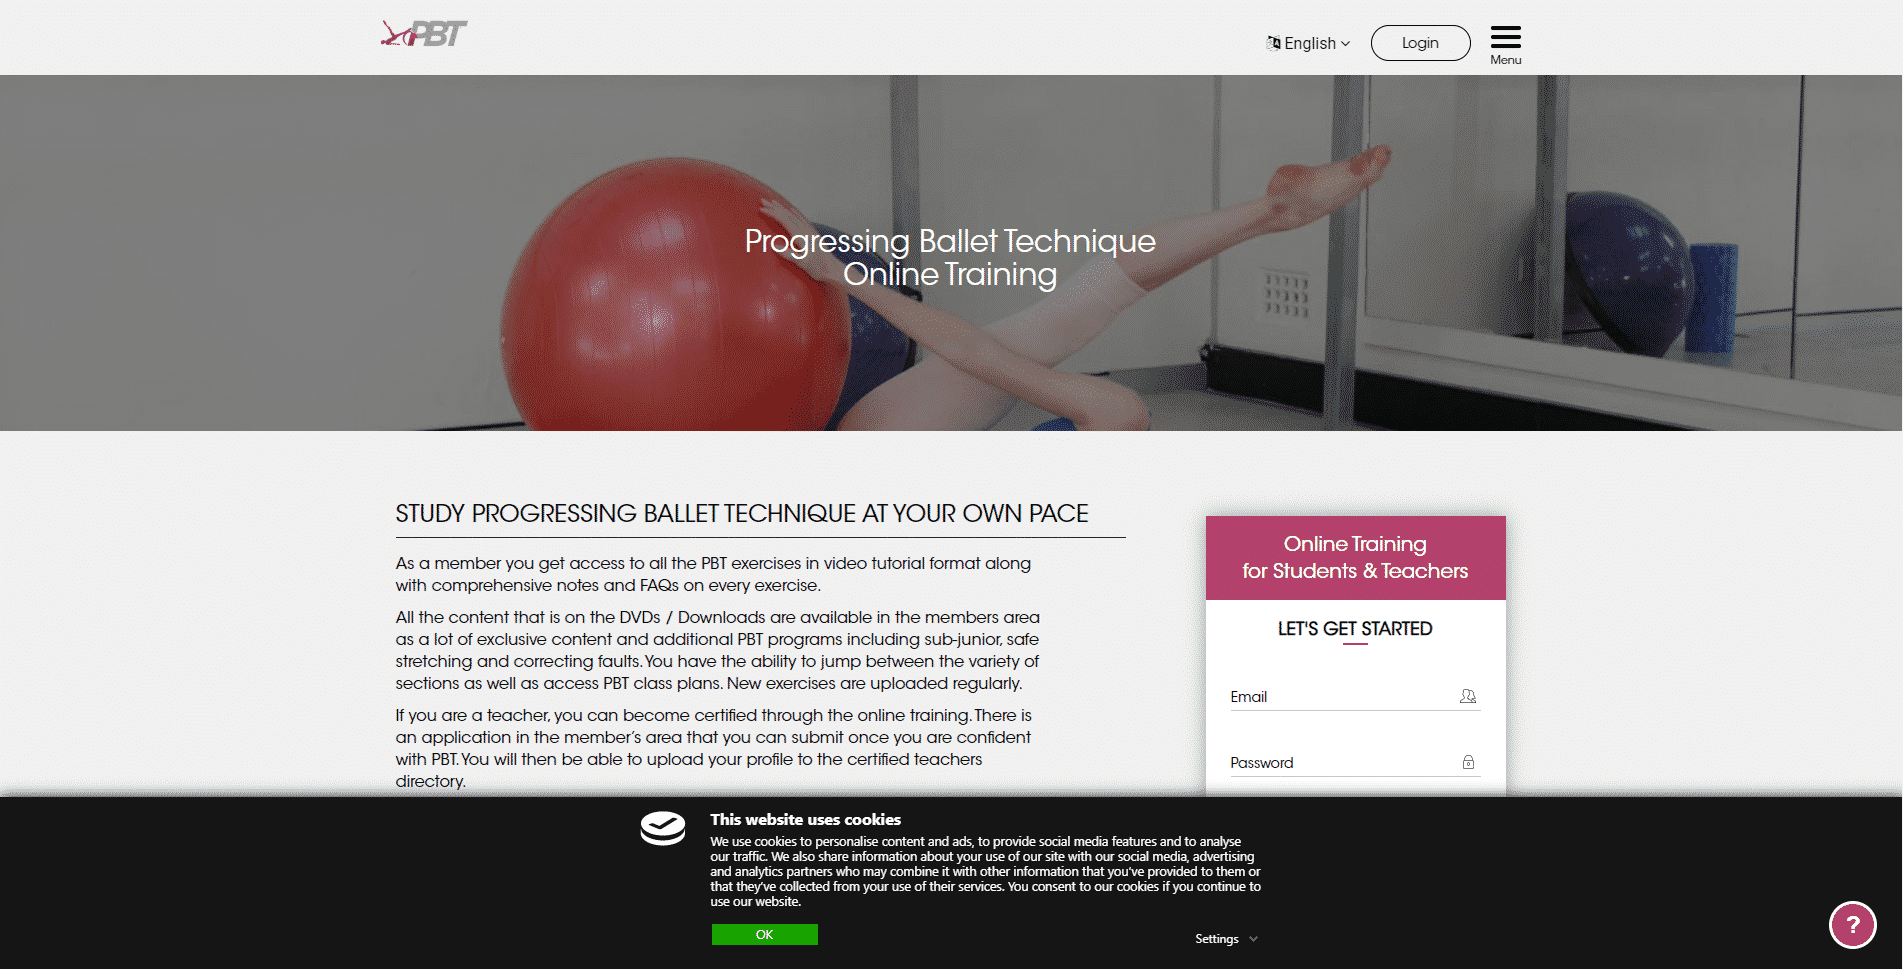 PROGRESSING BALLET TECHNIQUE (P.B.T).